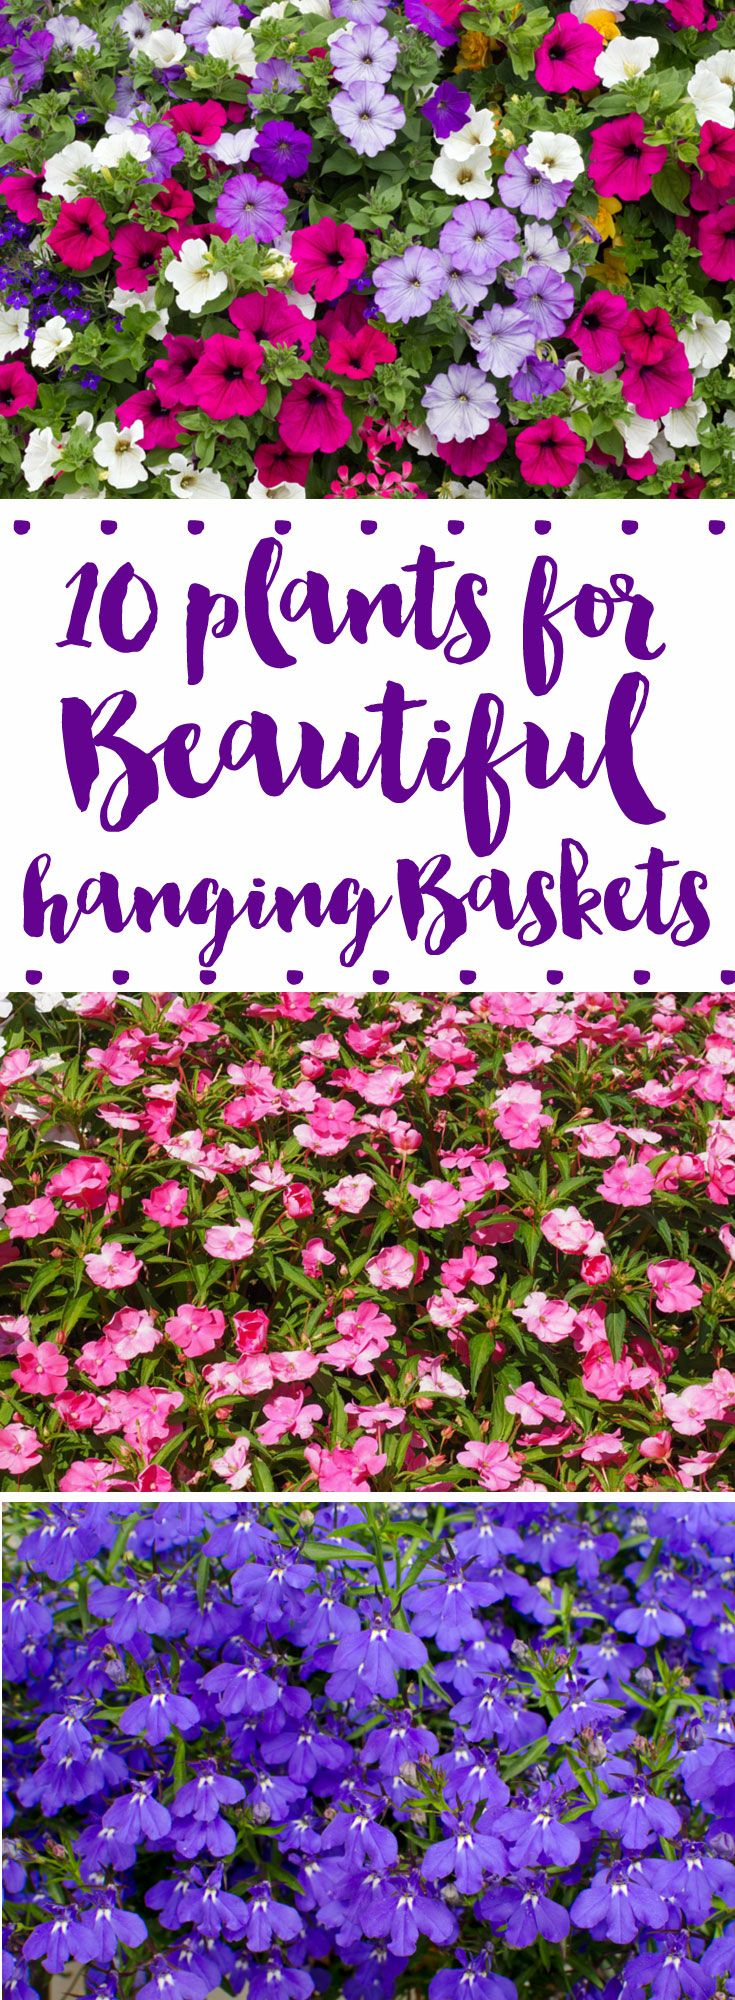 10 Flowers For Beautiful Hanging Baskets